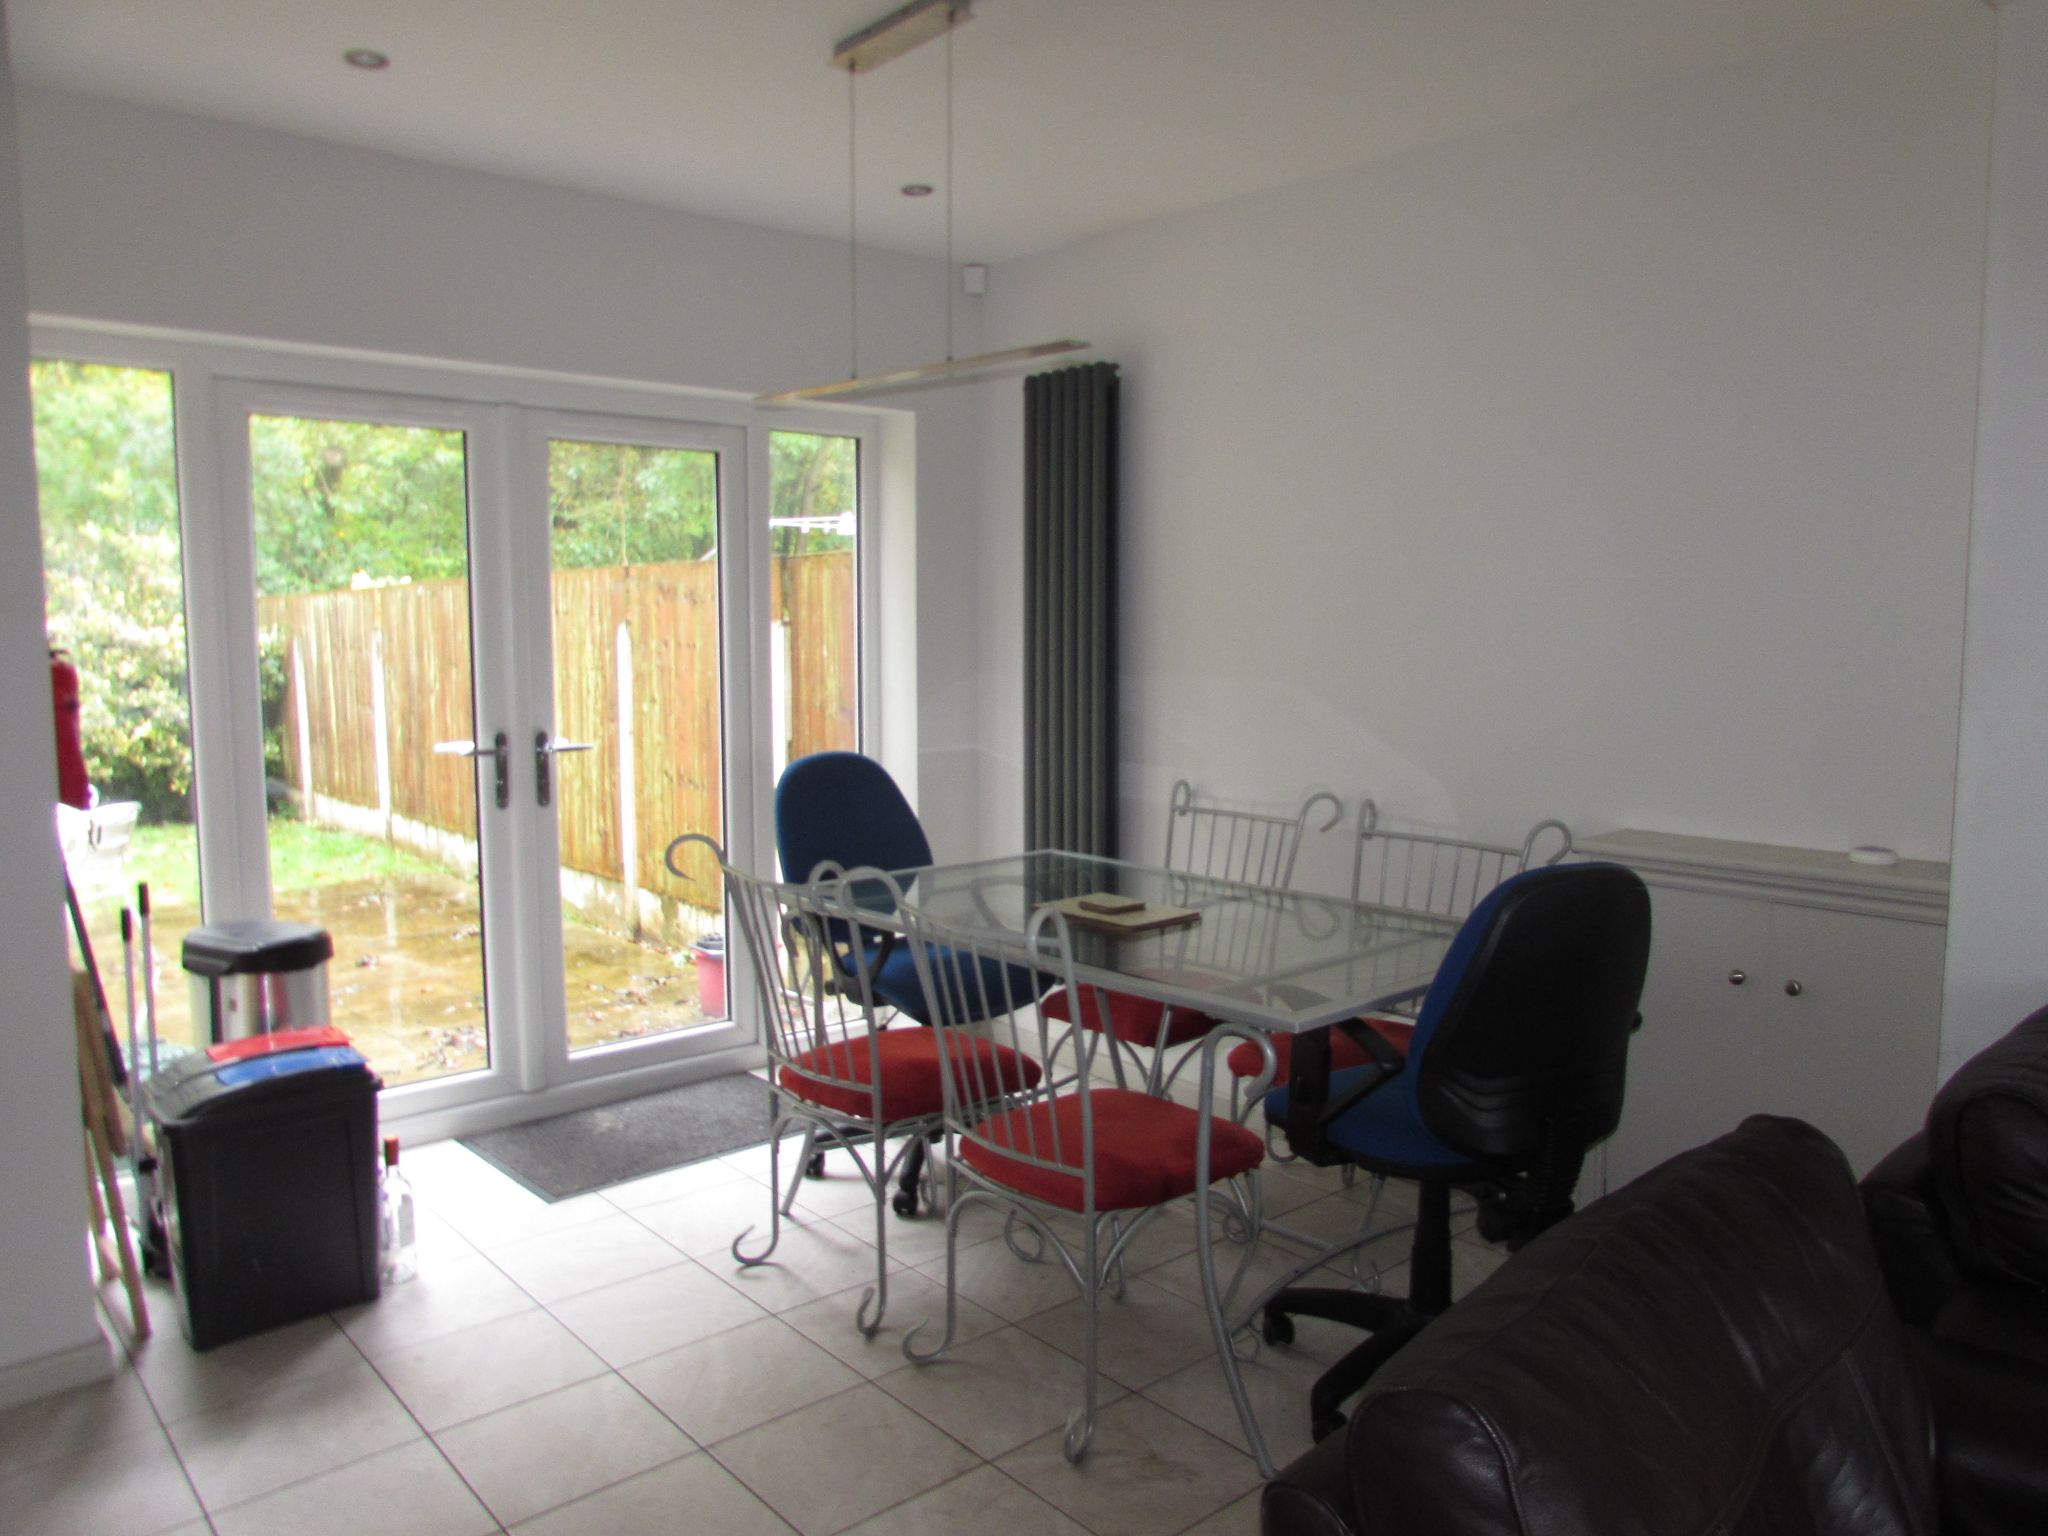 1 Bedroom Semi-detached House To Rent - Photograph 3